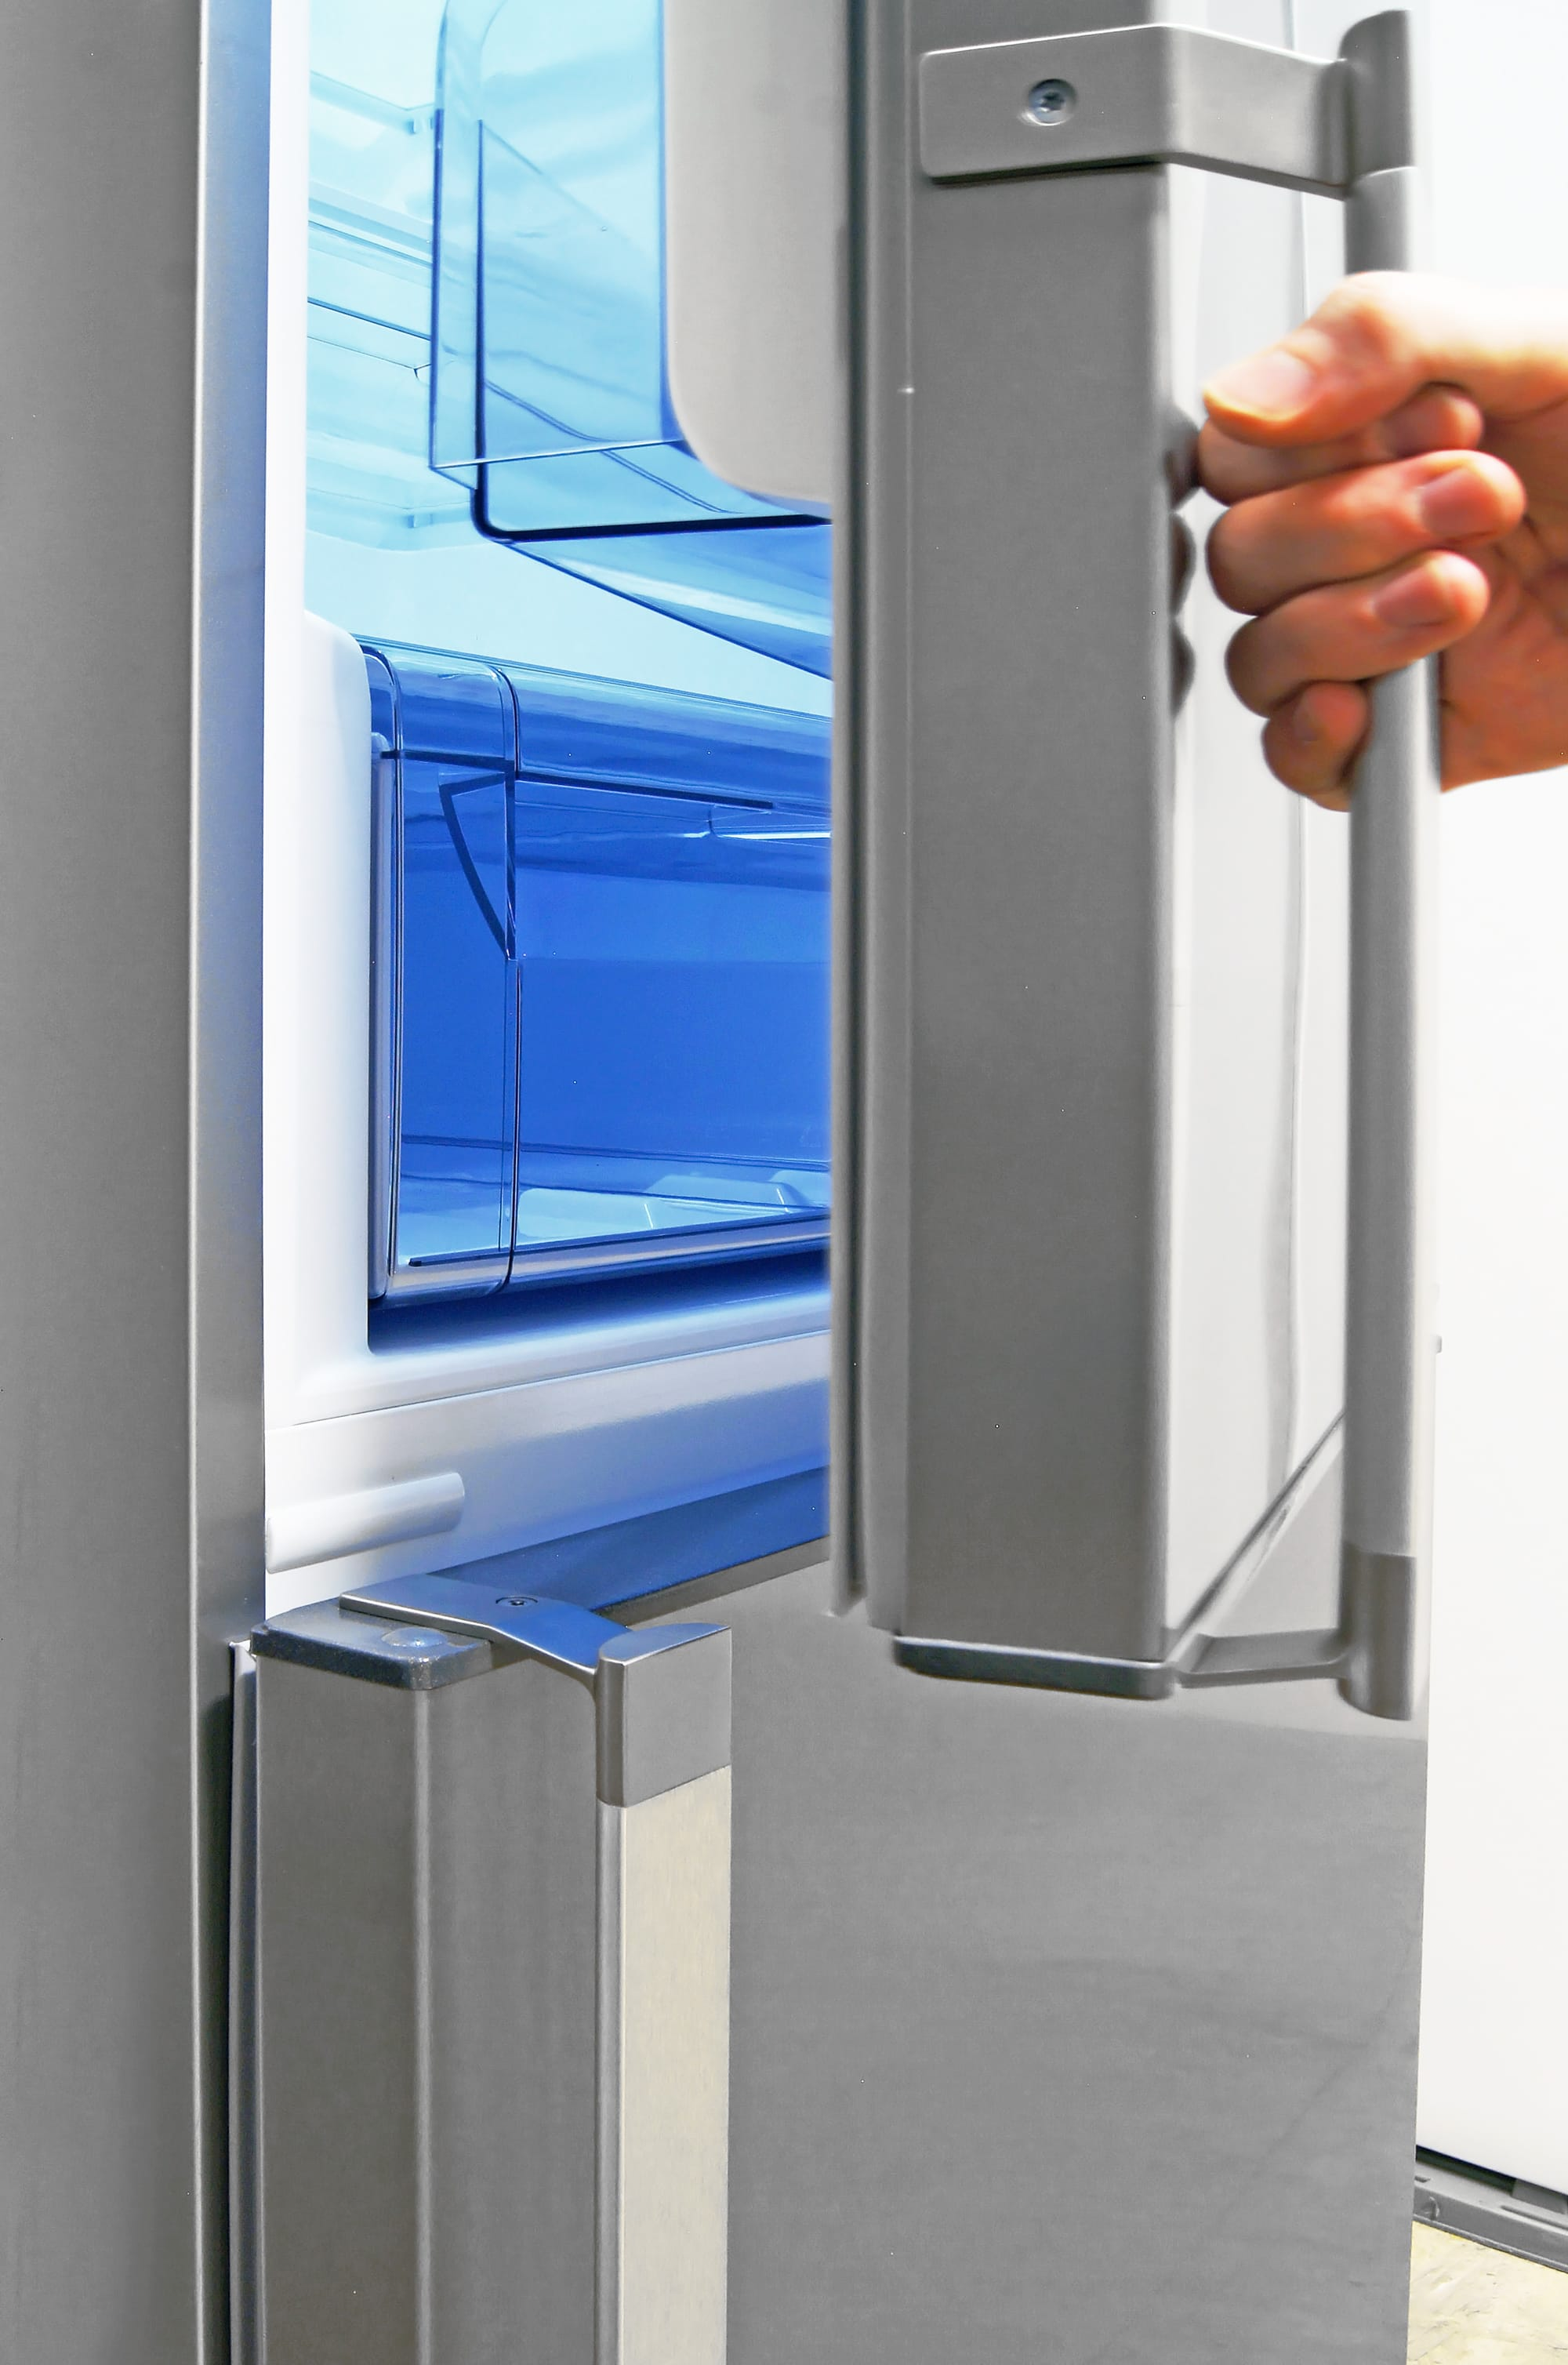 The Fagor FFJA4845X's door handles have a slightly raised edge between the darker hinge and the lighter connecting bar.